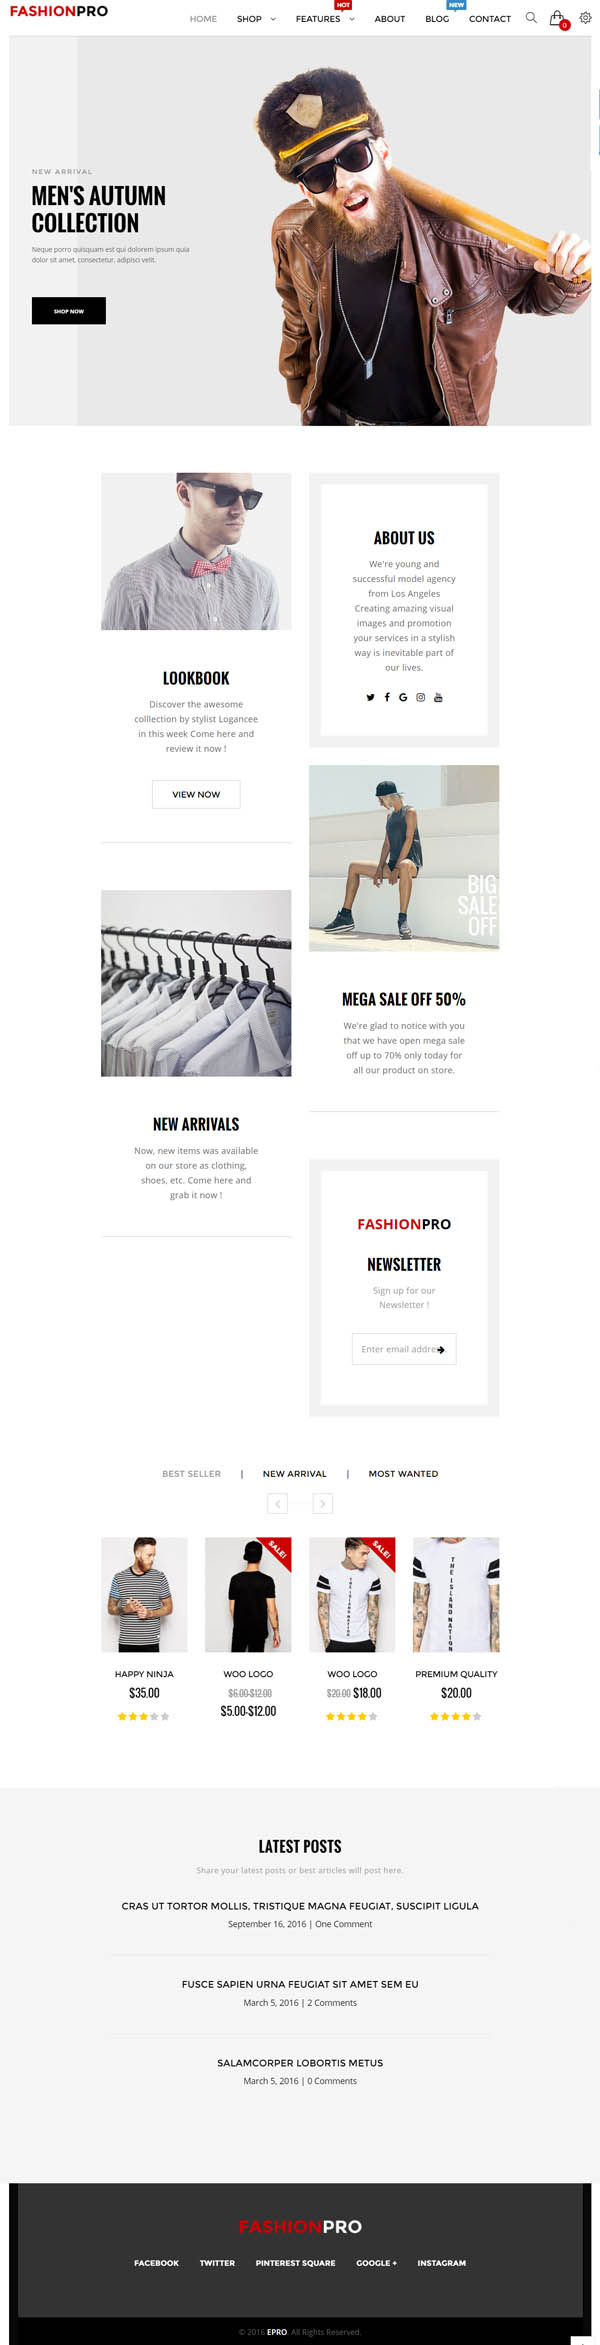 ePro : Multipurpose WooCommerce Theme